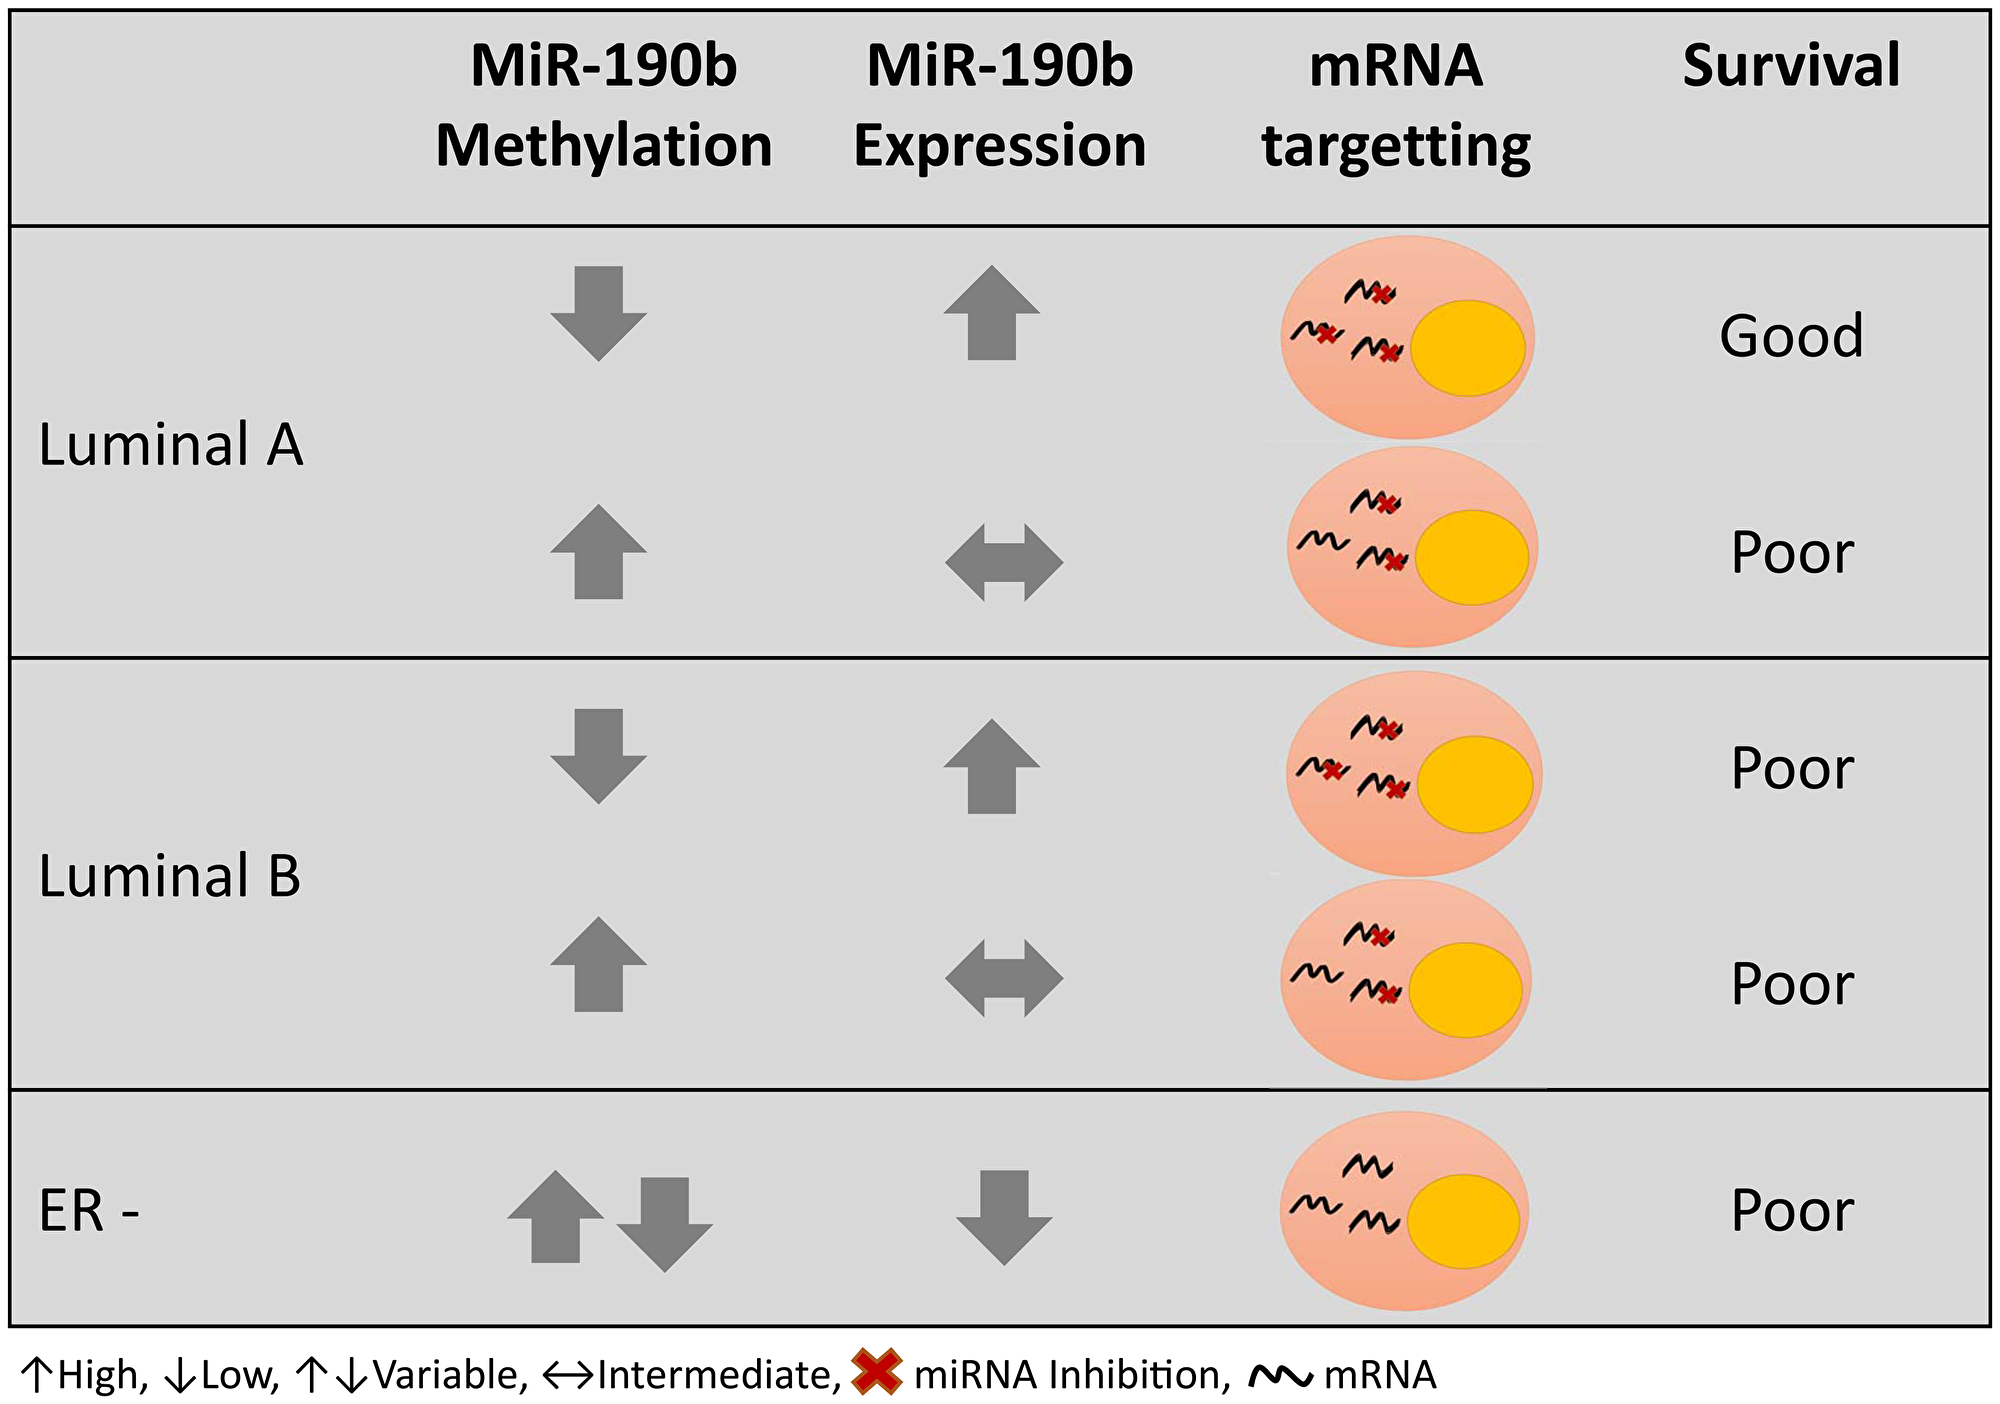 Graphical summary of miR-190b methylation and expression in different breast cancer subtypes and prognosis.